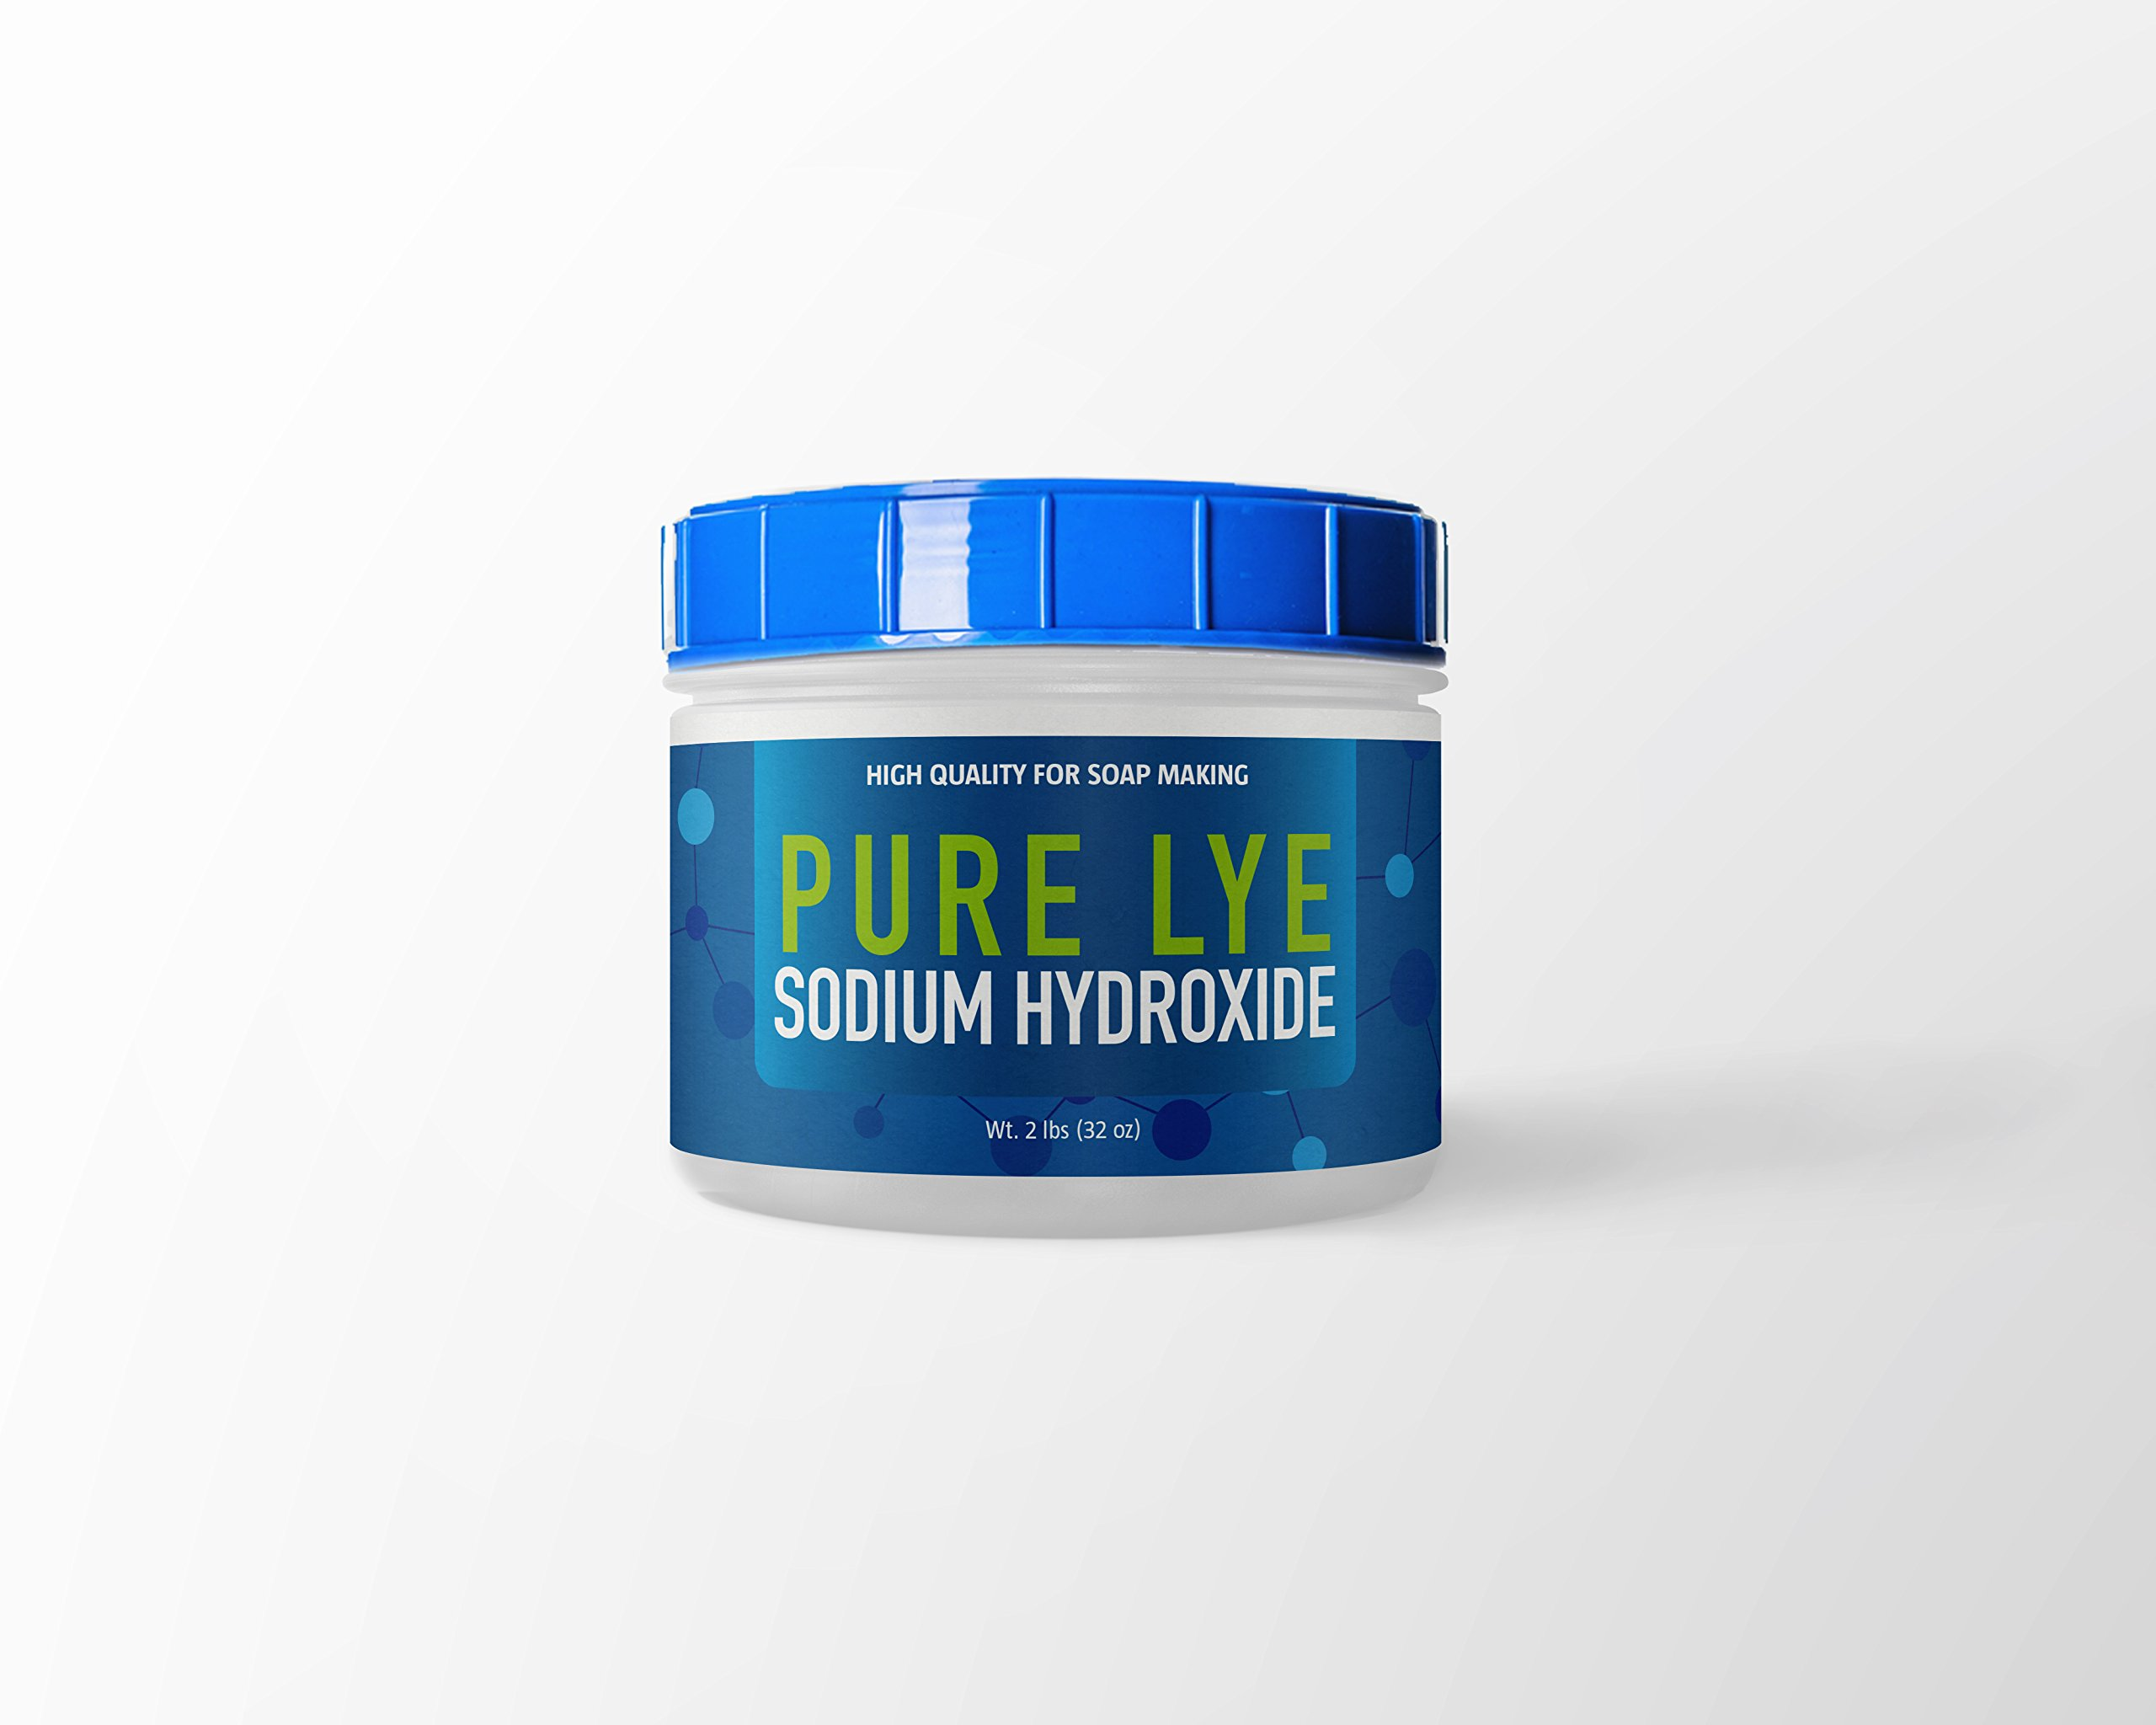 Lye (NaOH) (Sodium Hydroxide) (Caustic Soda) for Soap Making, 98.5% Pure,, Resealable Tub with Scoop, (2 lb (32 oz))